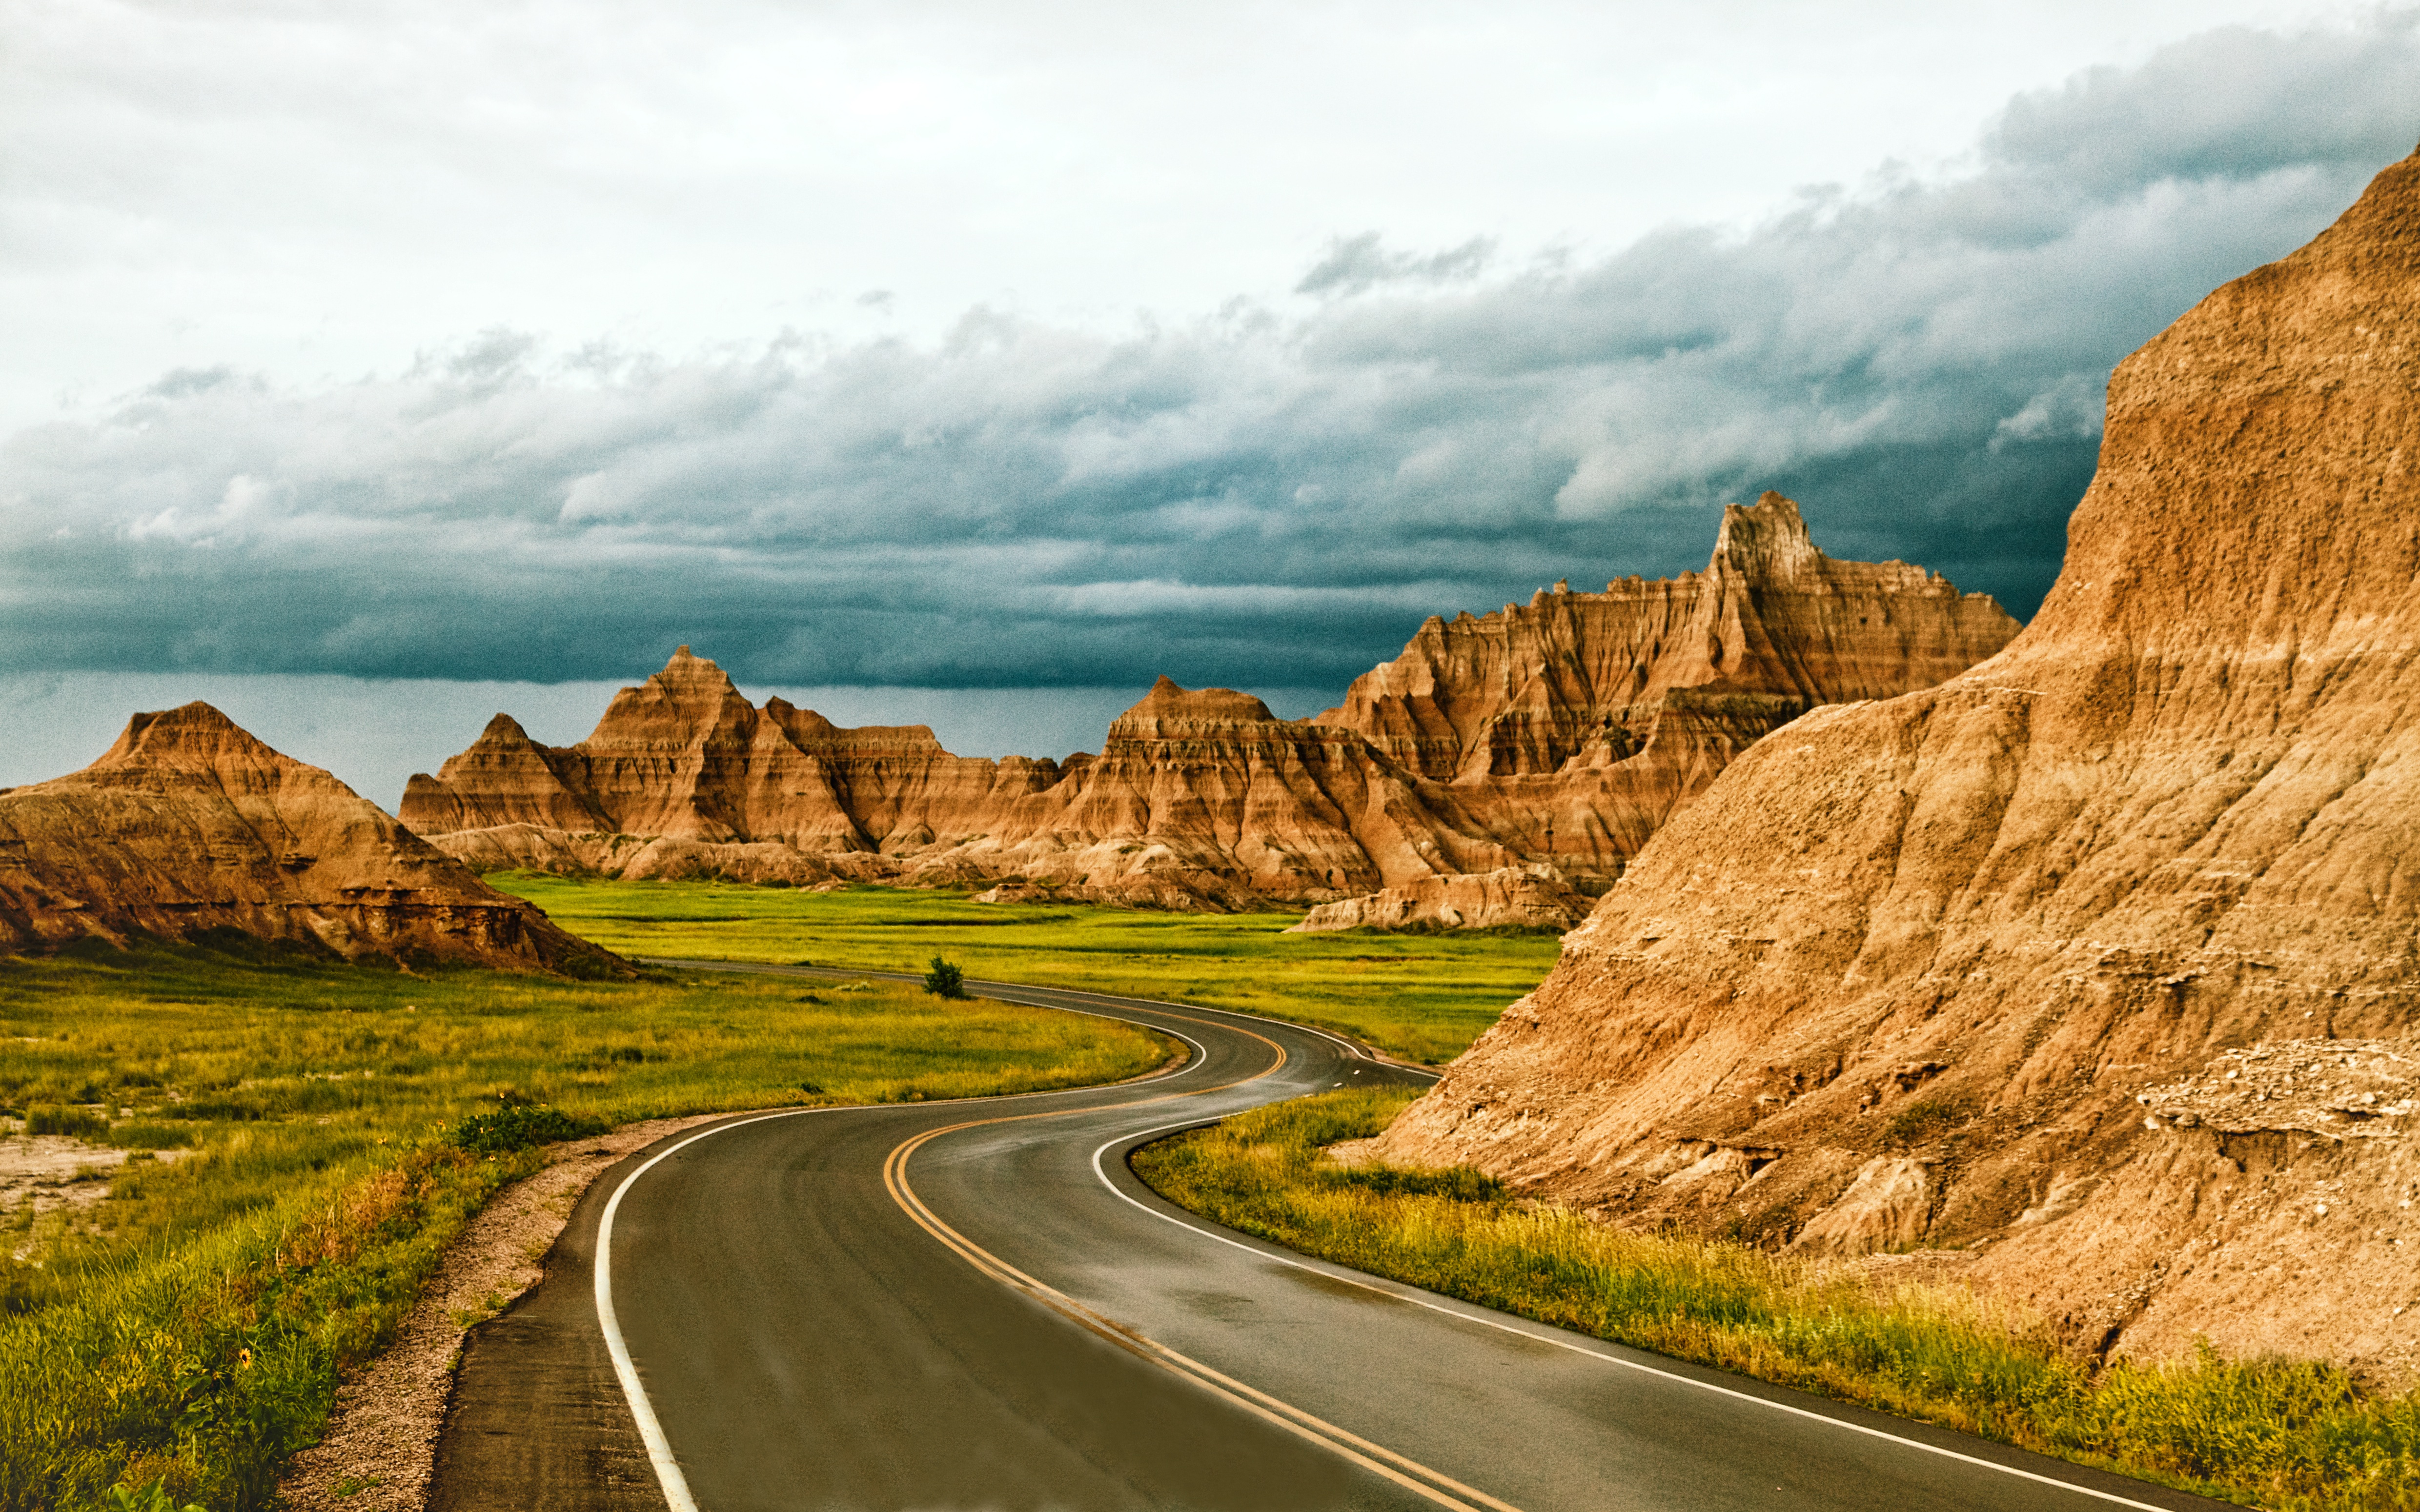 Natural Wonders Of The United States Badlands National Park South Dakota In United States Of